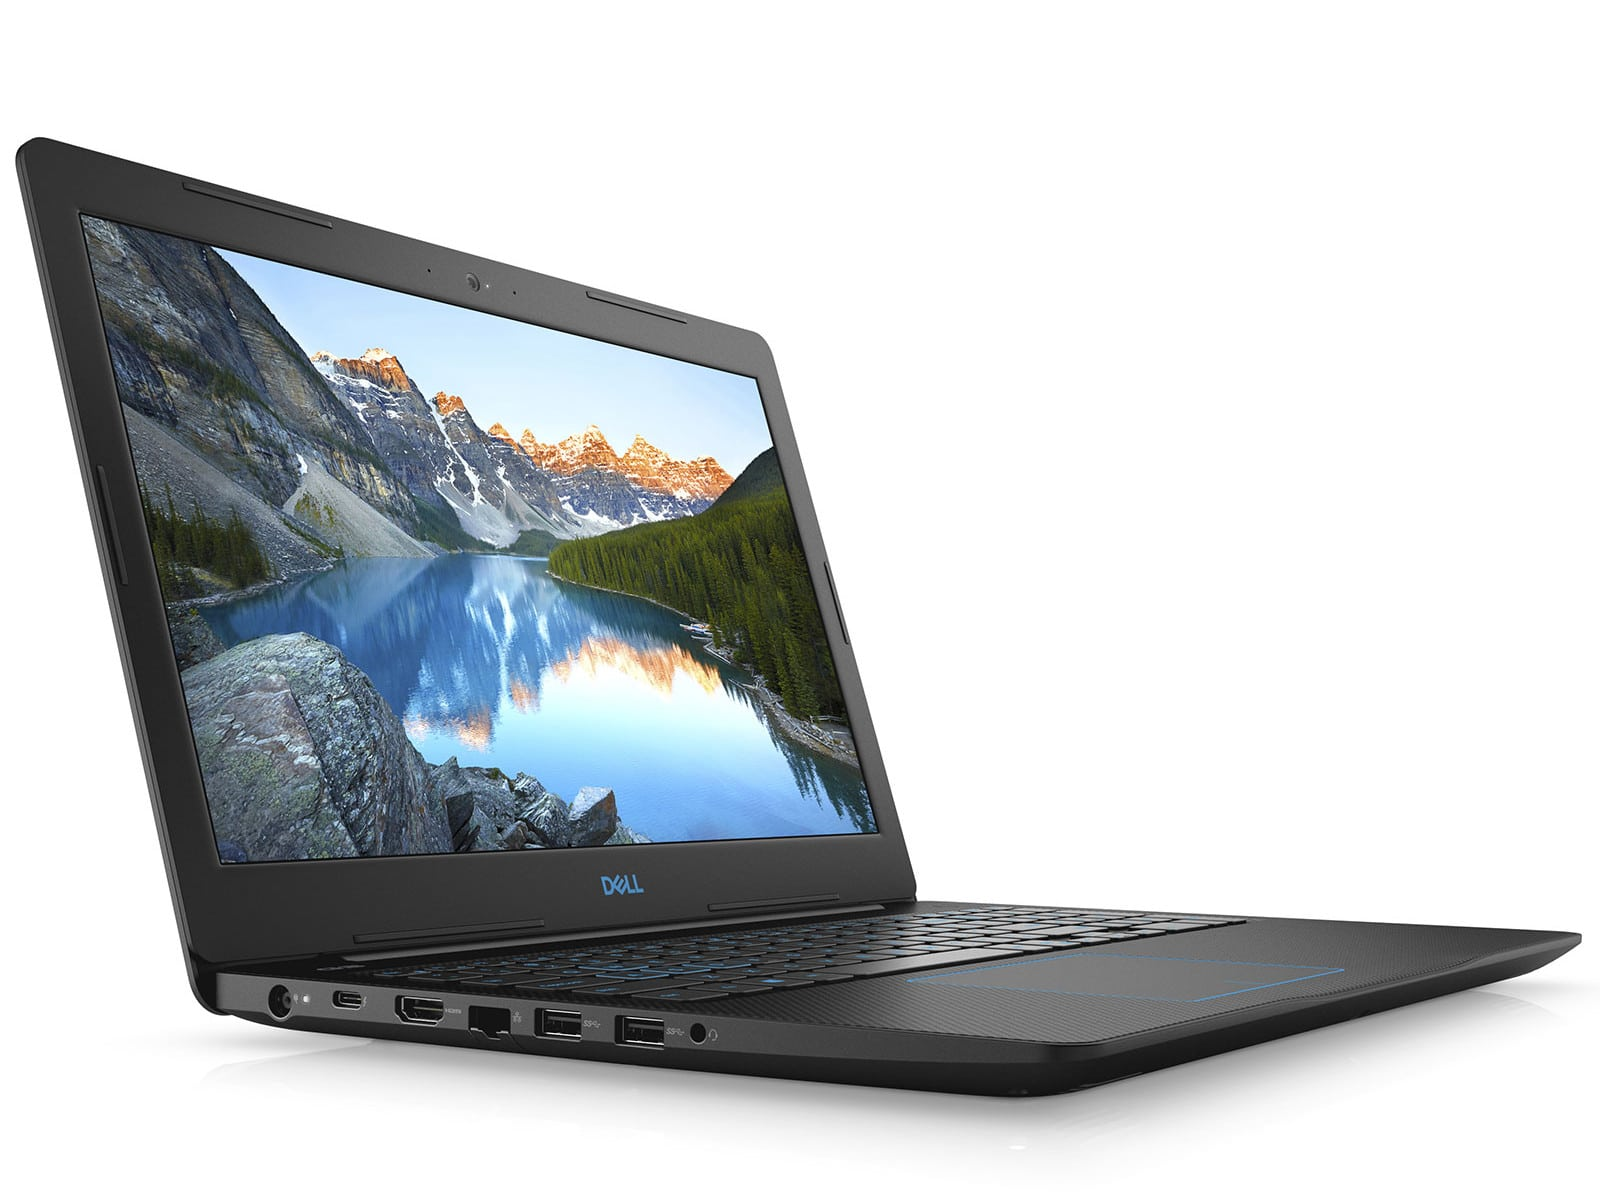 Image 1 : [Promo] Le PC portable Dell G3 15 (GXT 1660 Ti) à 1 188 €